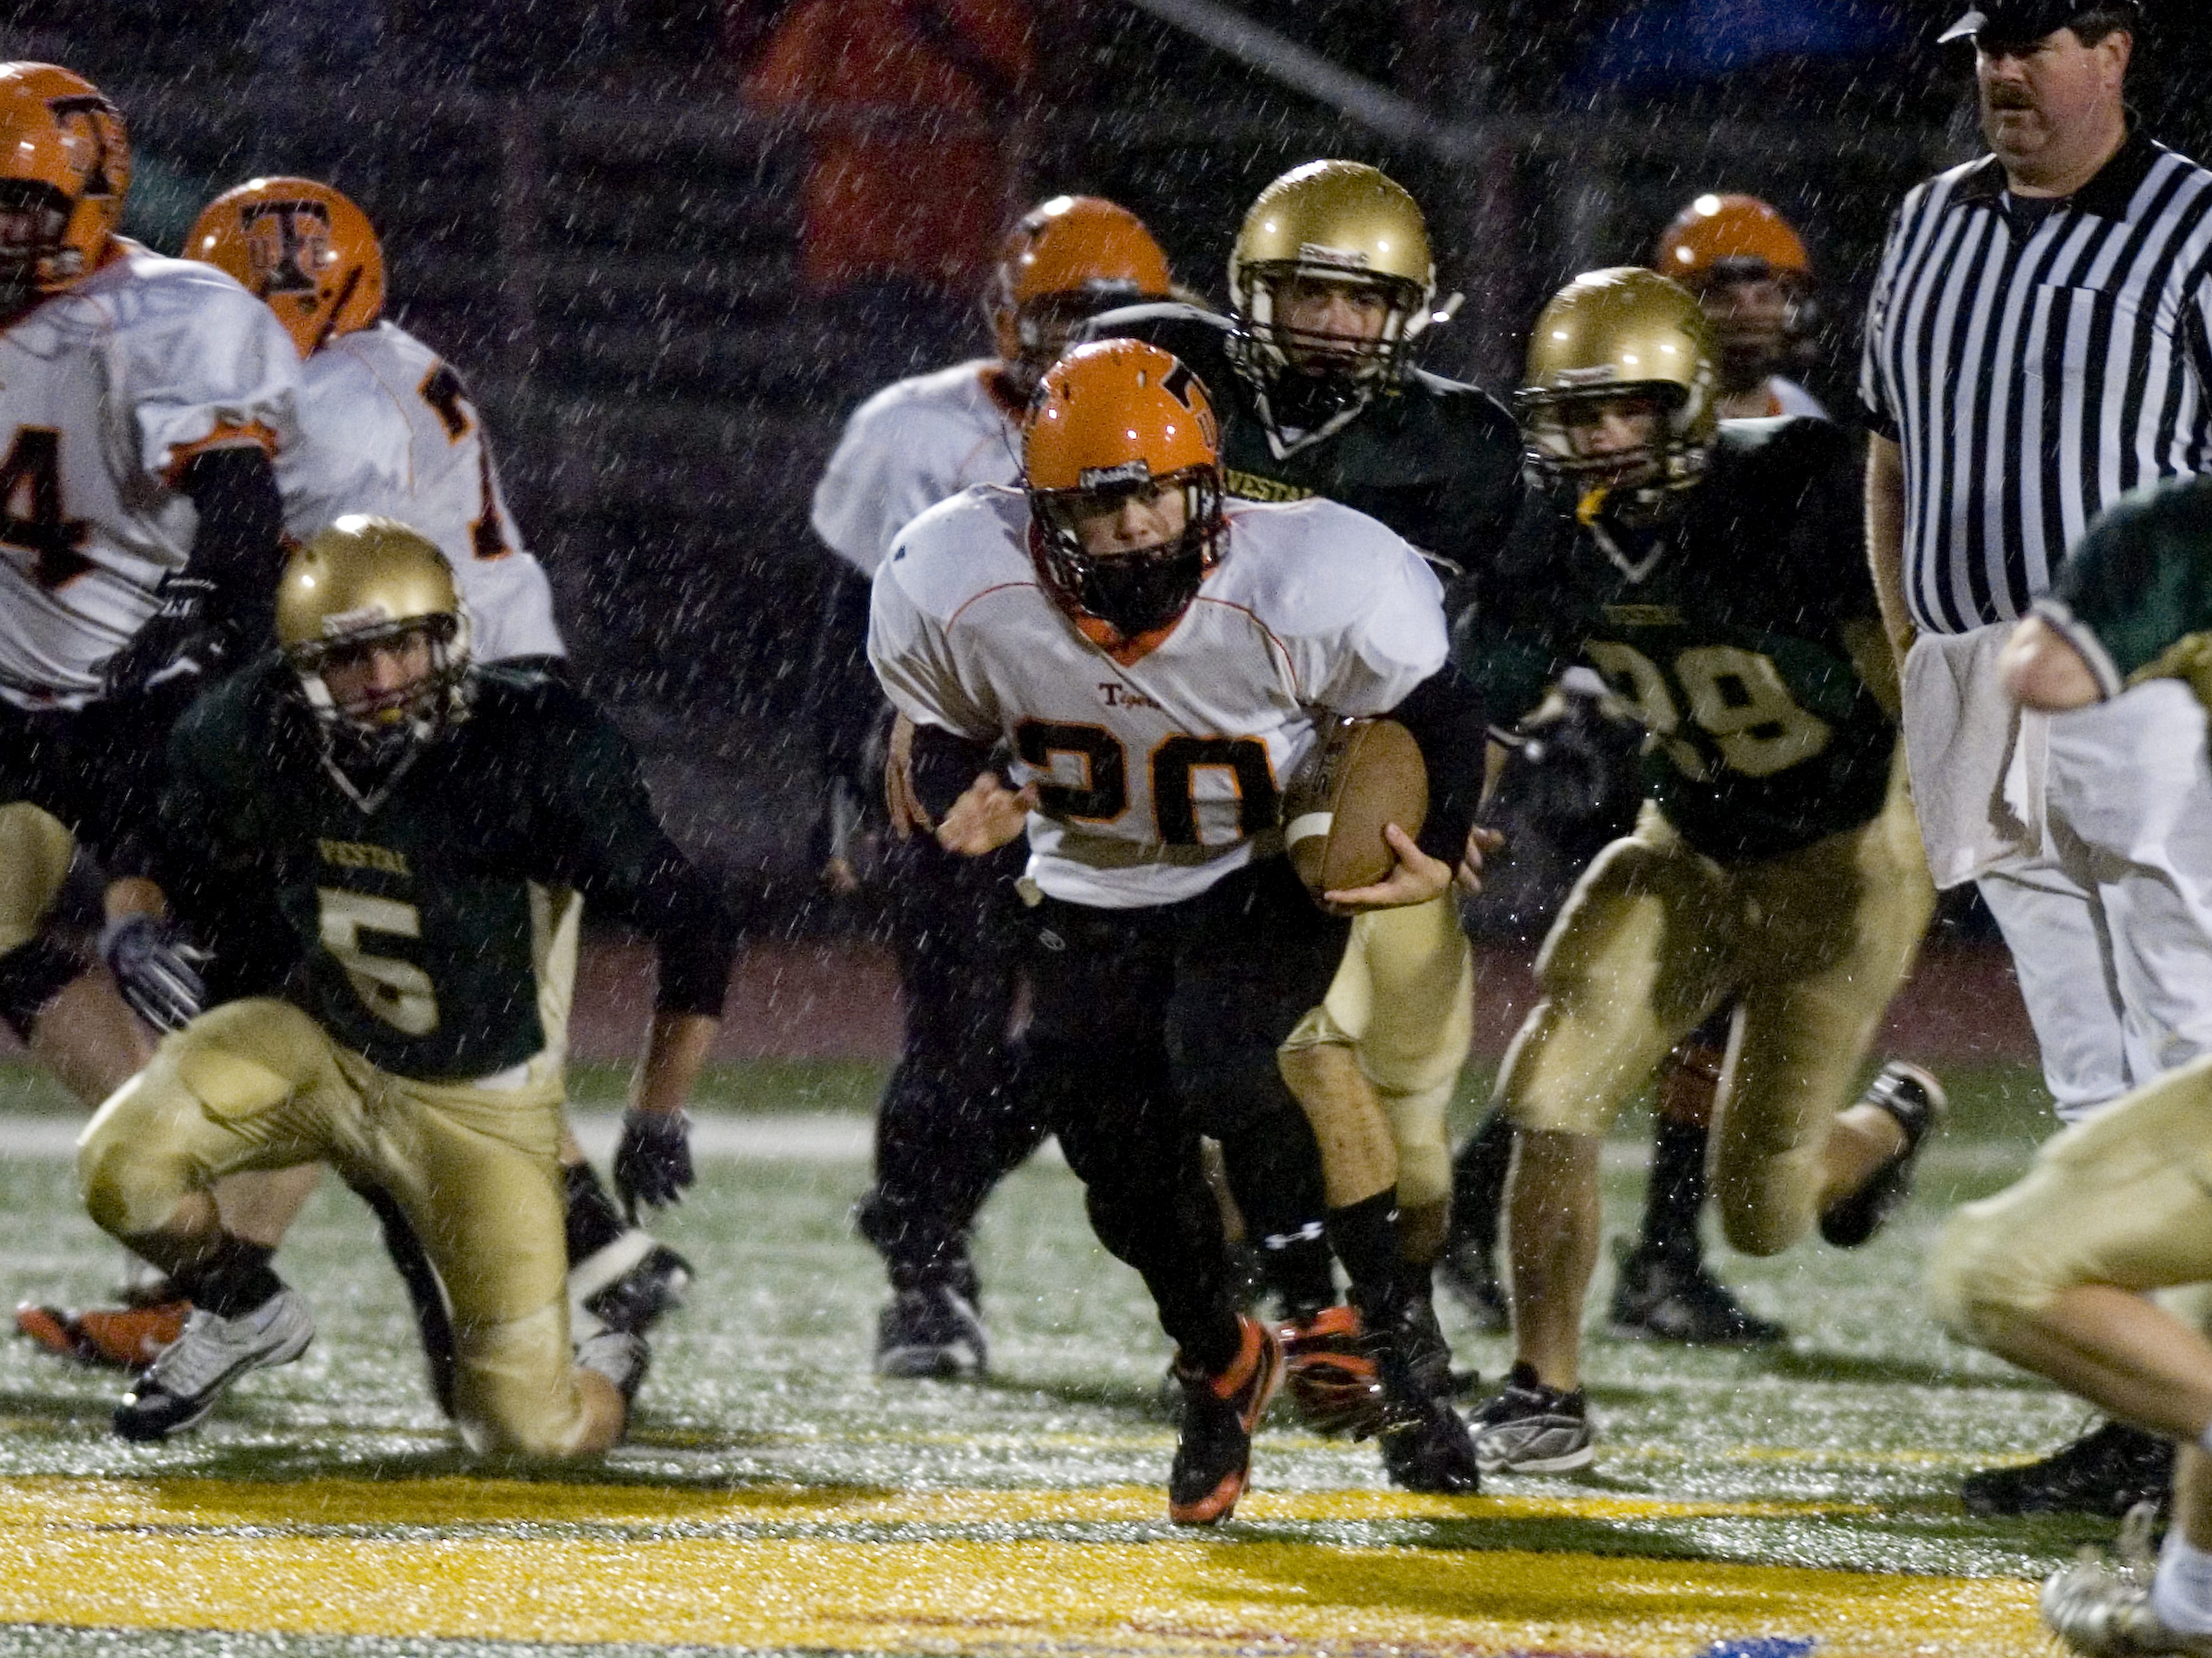 Union-Endicott's William Bedoya, 20, runs away with the ball in the first quarter of a 2009 game at Dick Hoover Stadium.